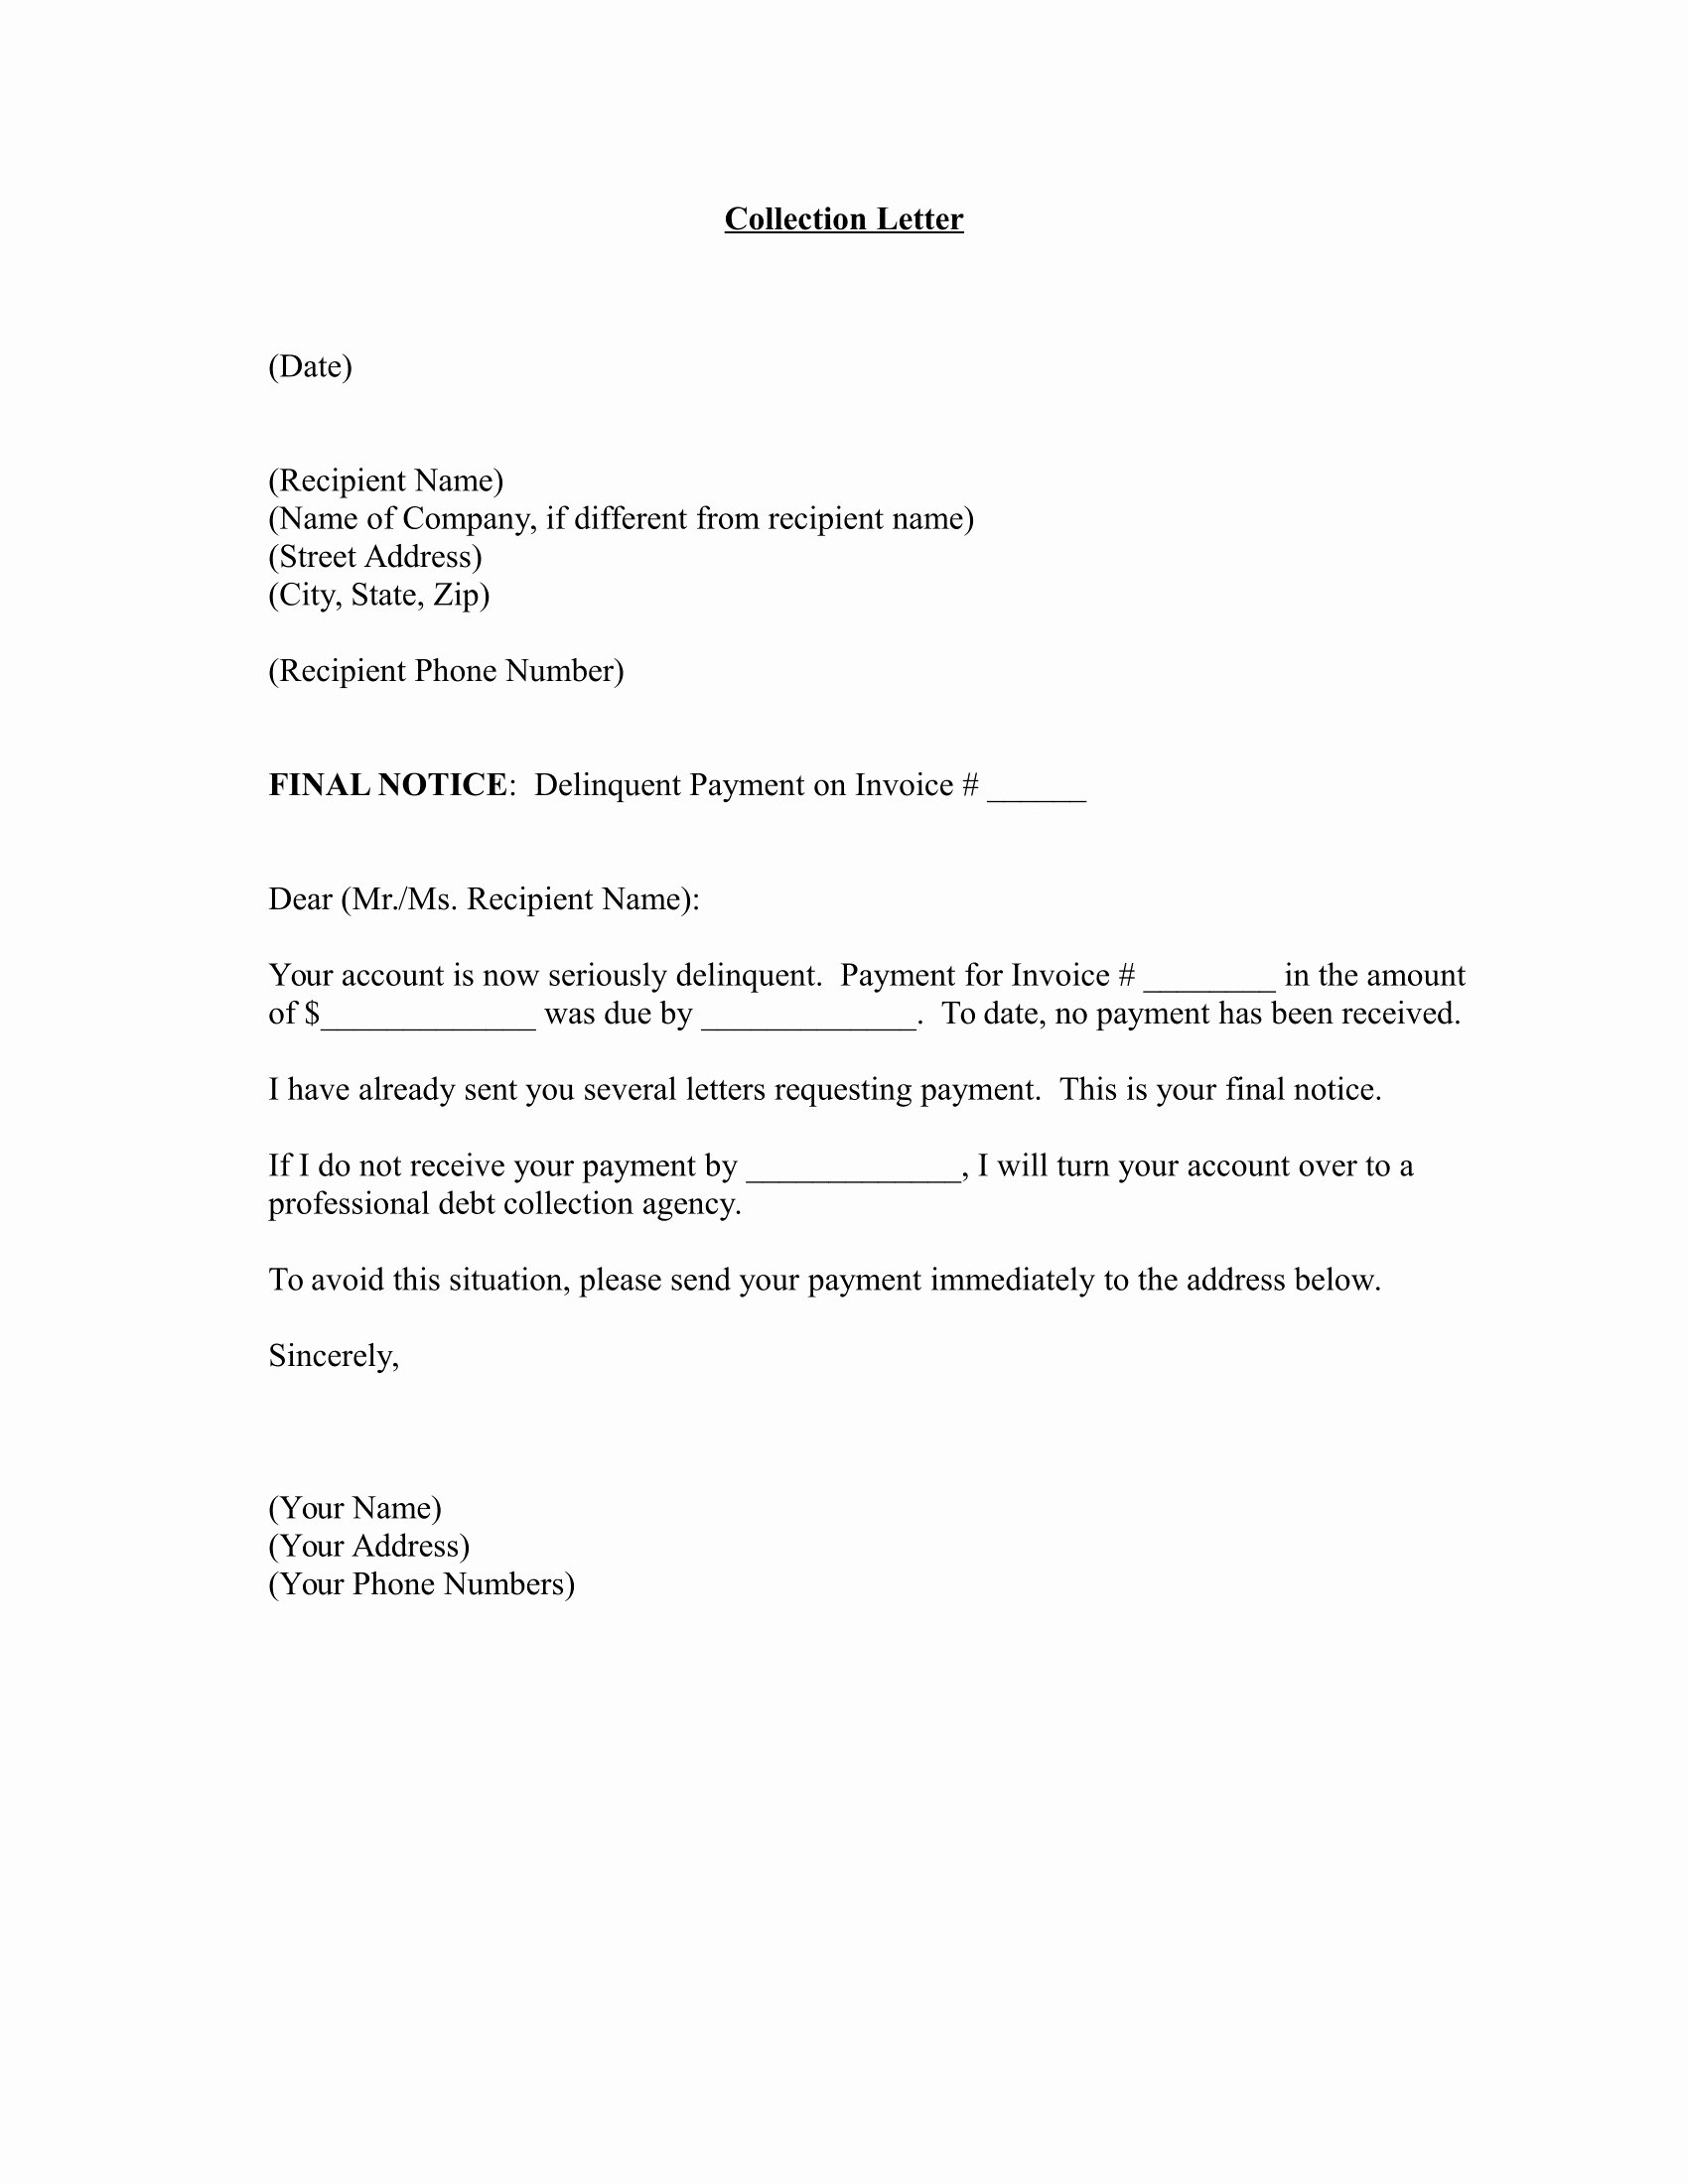 Collection Letter Template Free Beautiful Letter formats Download Free Business Letter Templates